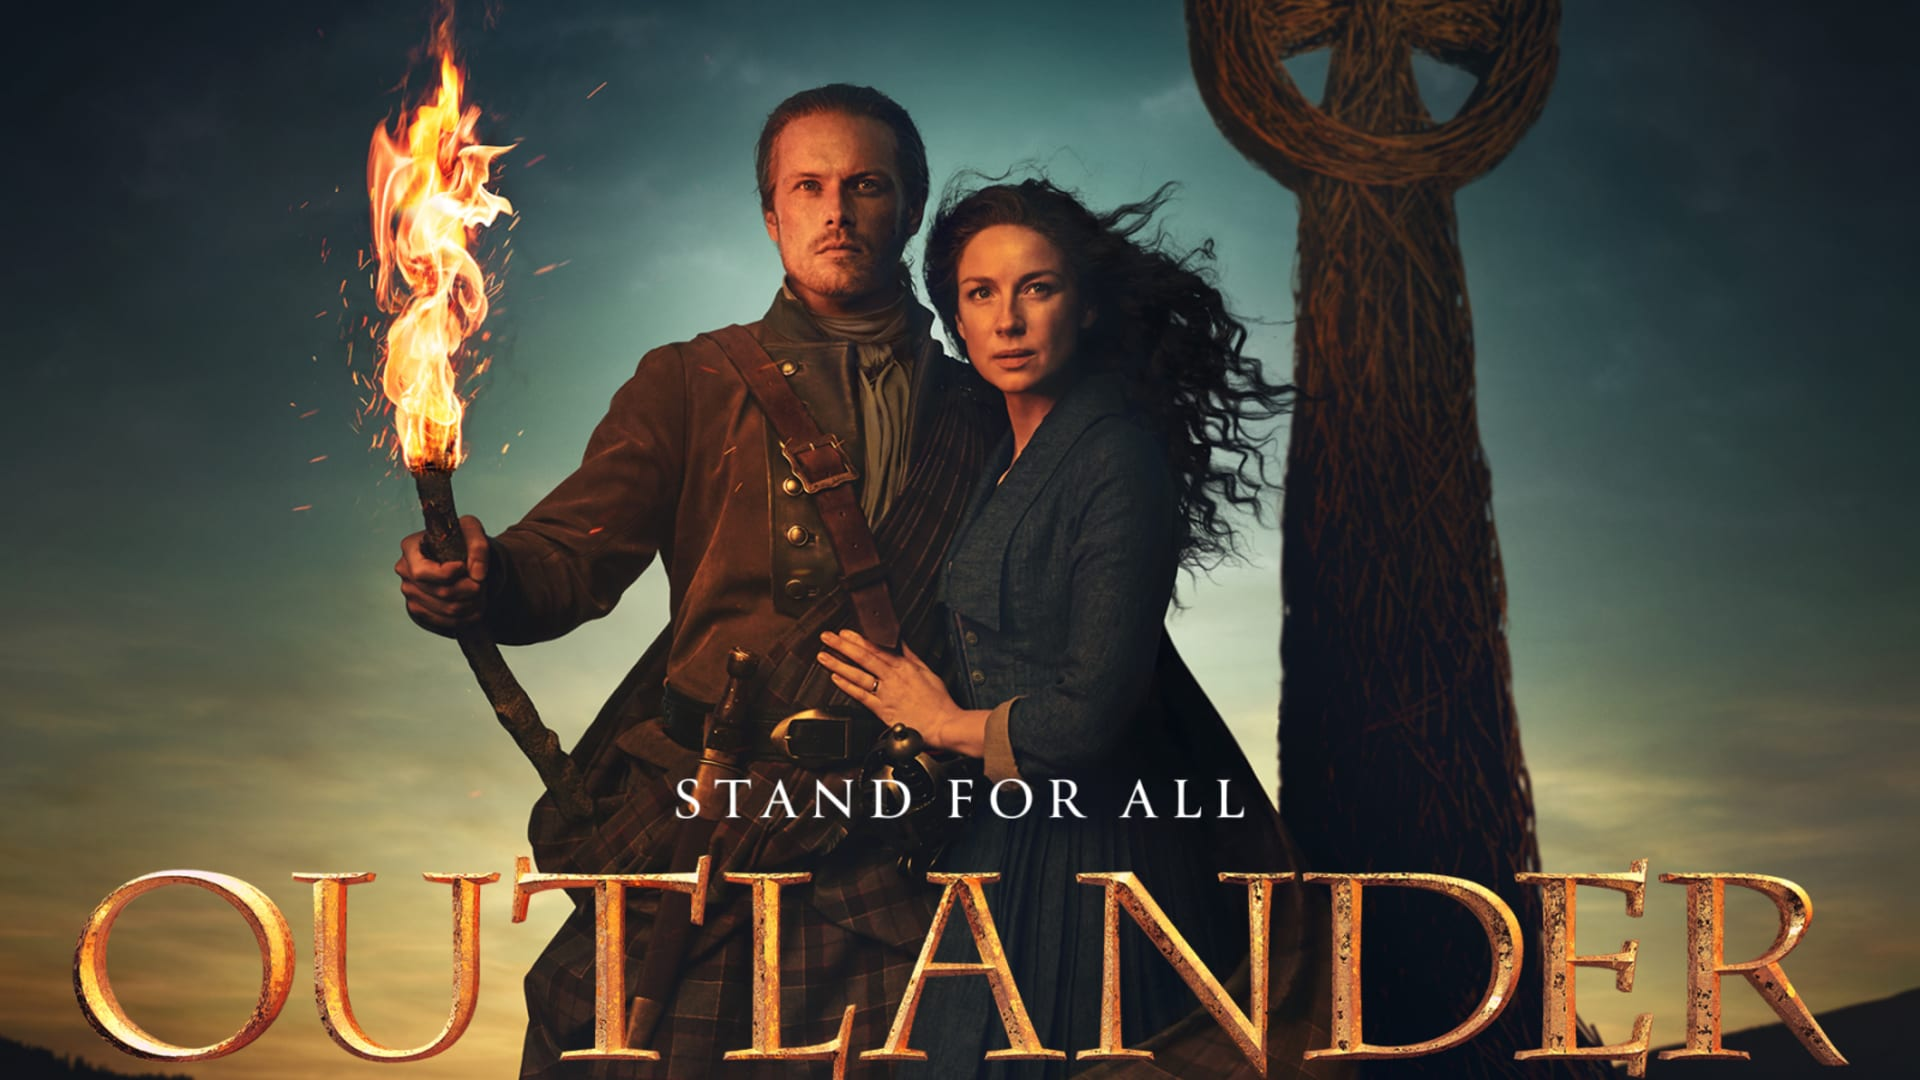 Claire stands for family in Outlander Season 5 promo poster